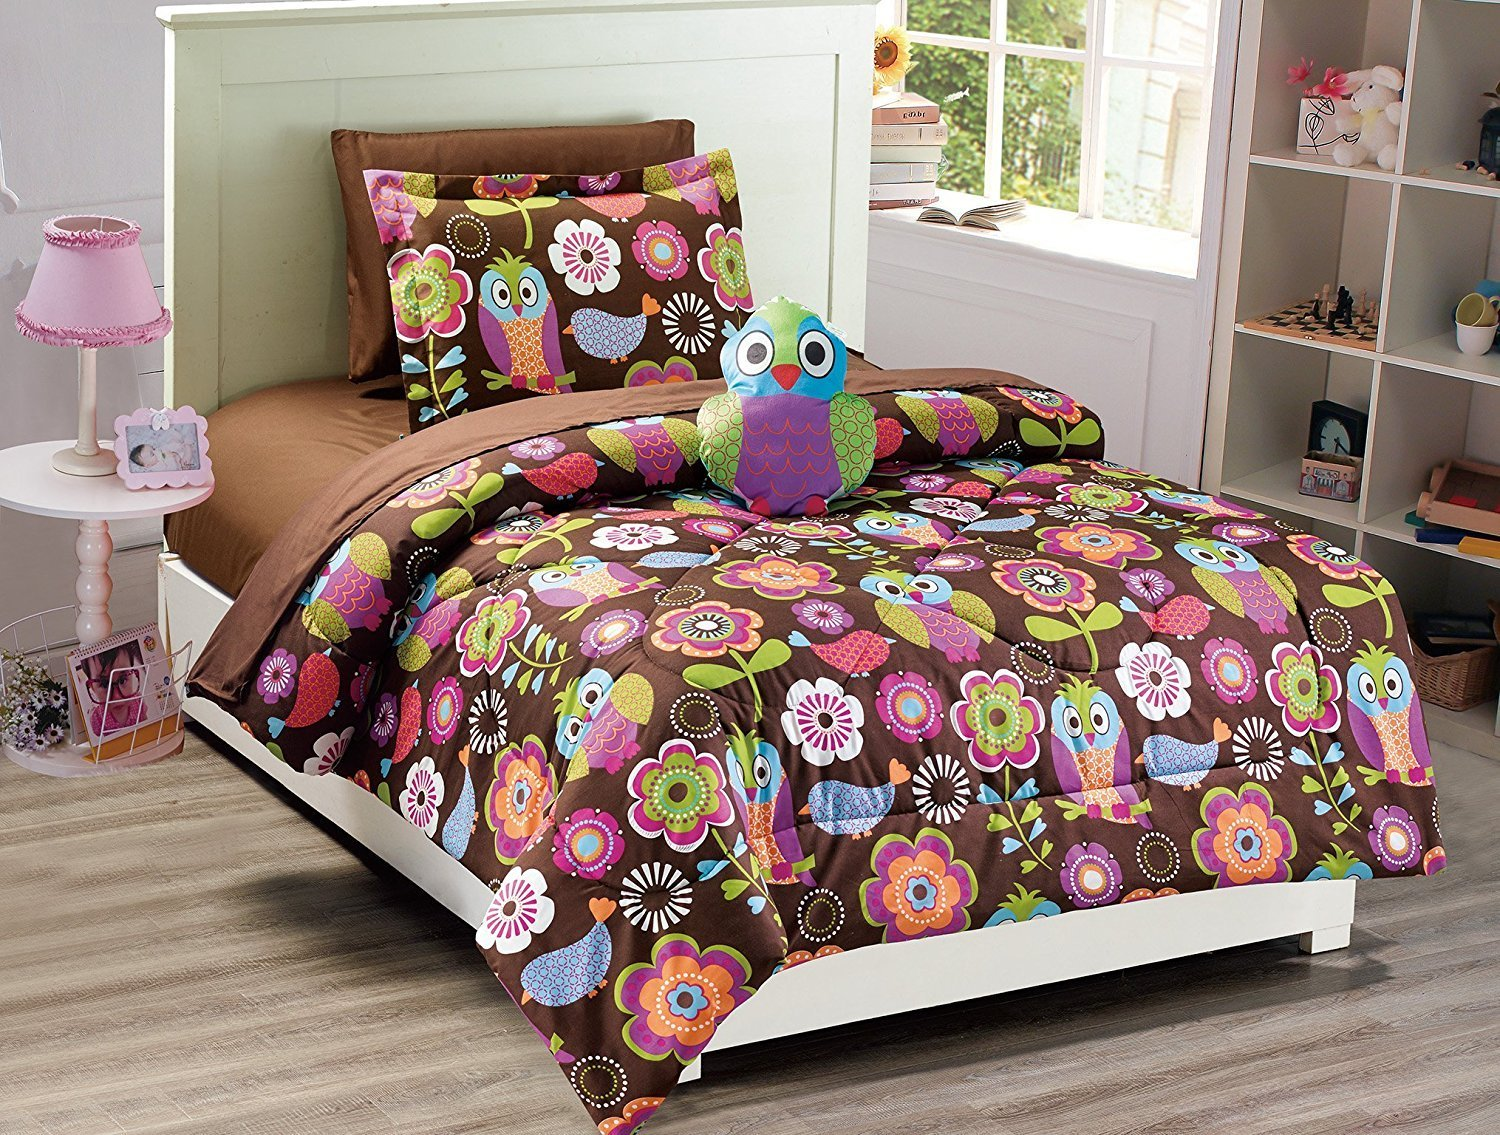 Cheap Green And Brown Comforter Find Green And Brown Comforter Deals On Line At Alibaba Com